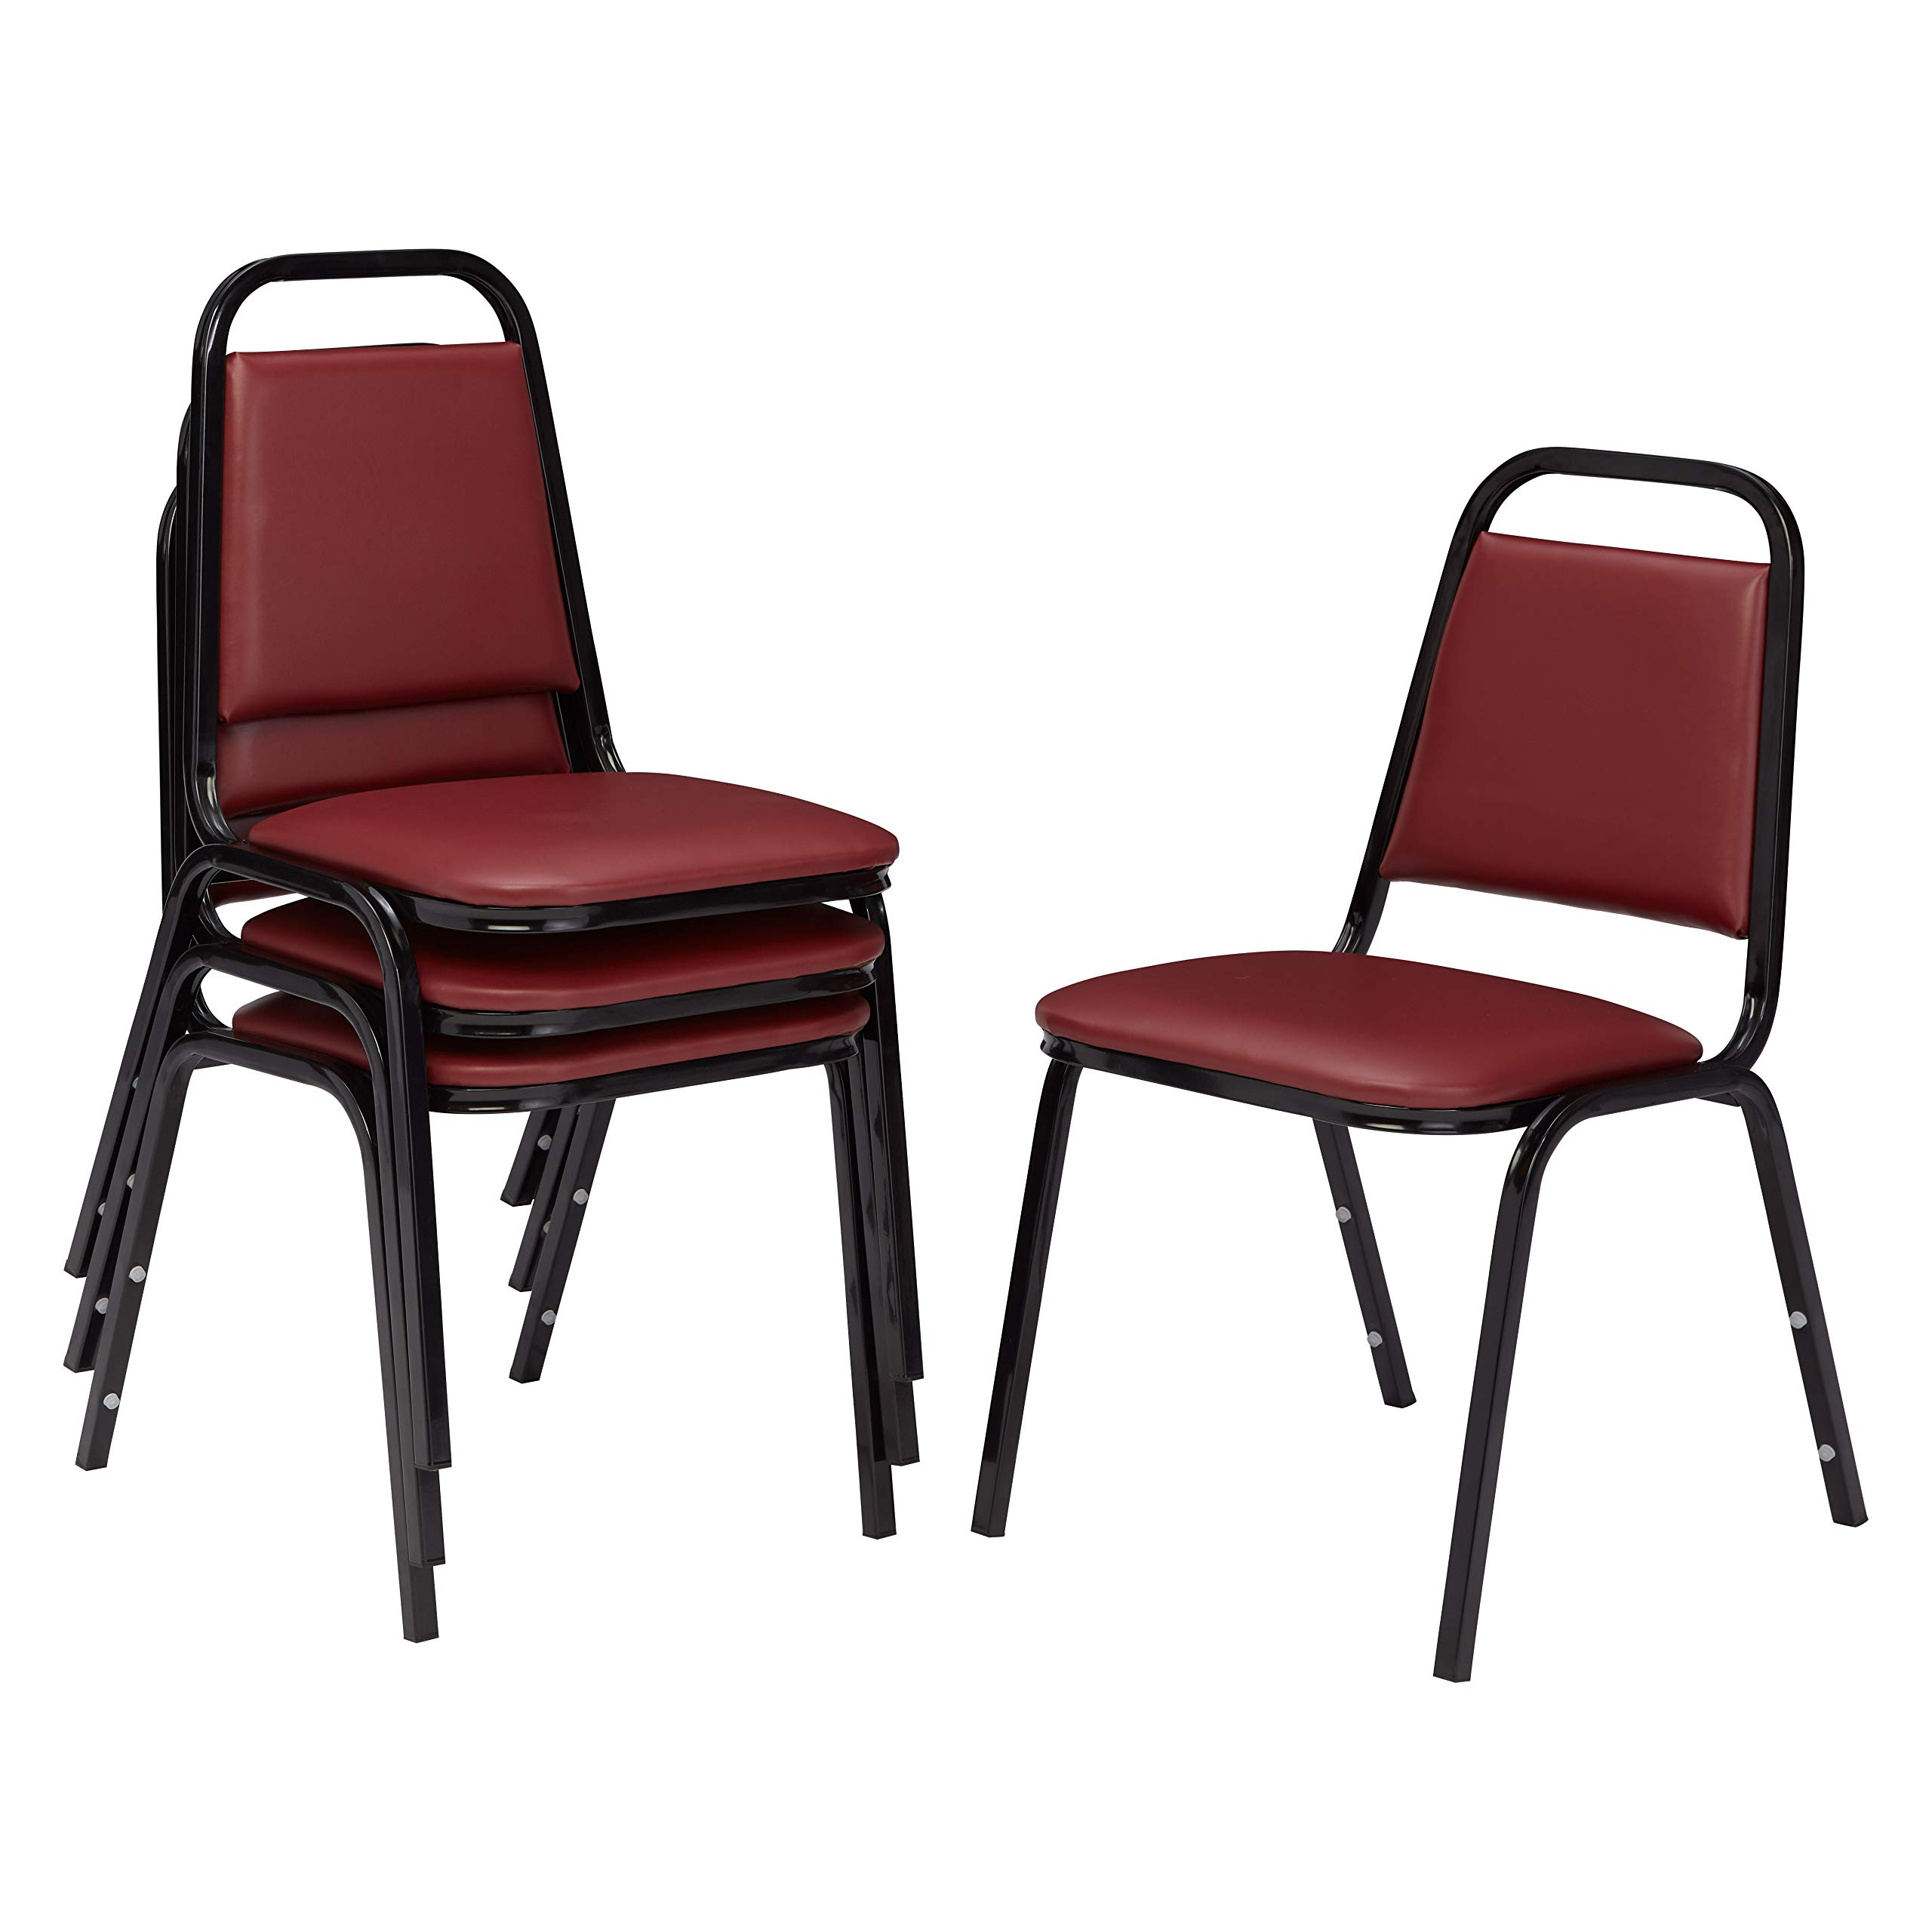 NPS 9108-B-CN Vinyl-upholstered Standard Stack Chair, 300-lb Weight Capacity, 16'' Length x 15-3/4'' Width x 33'' Height, Burgundy (Carton of 4)